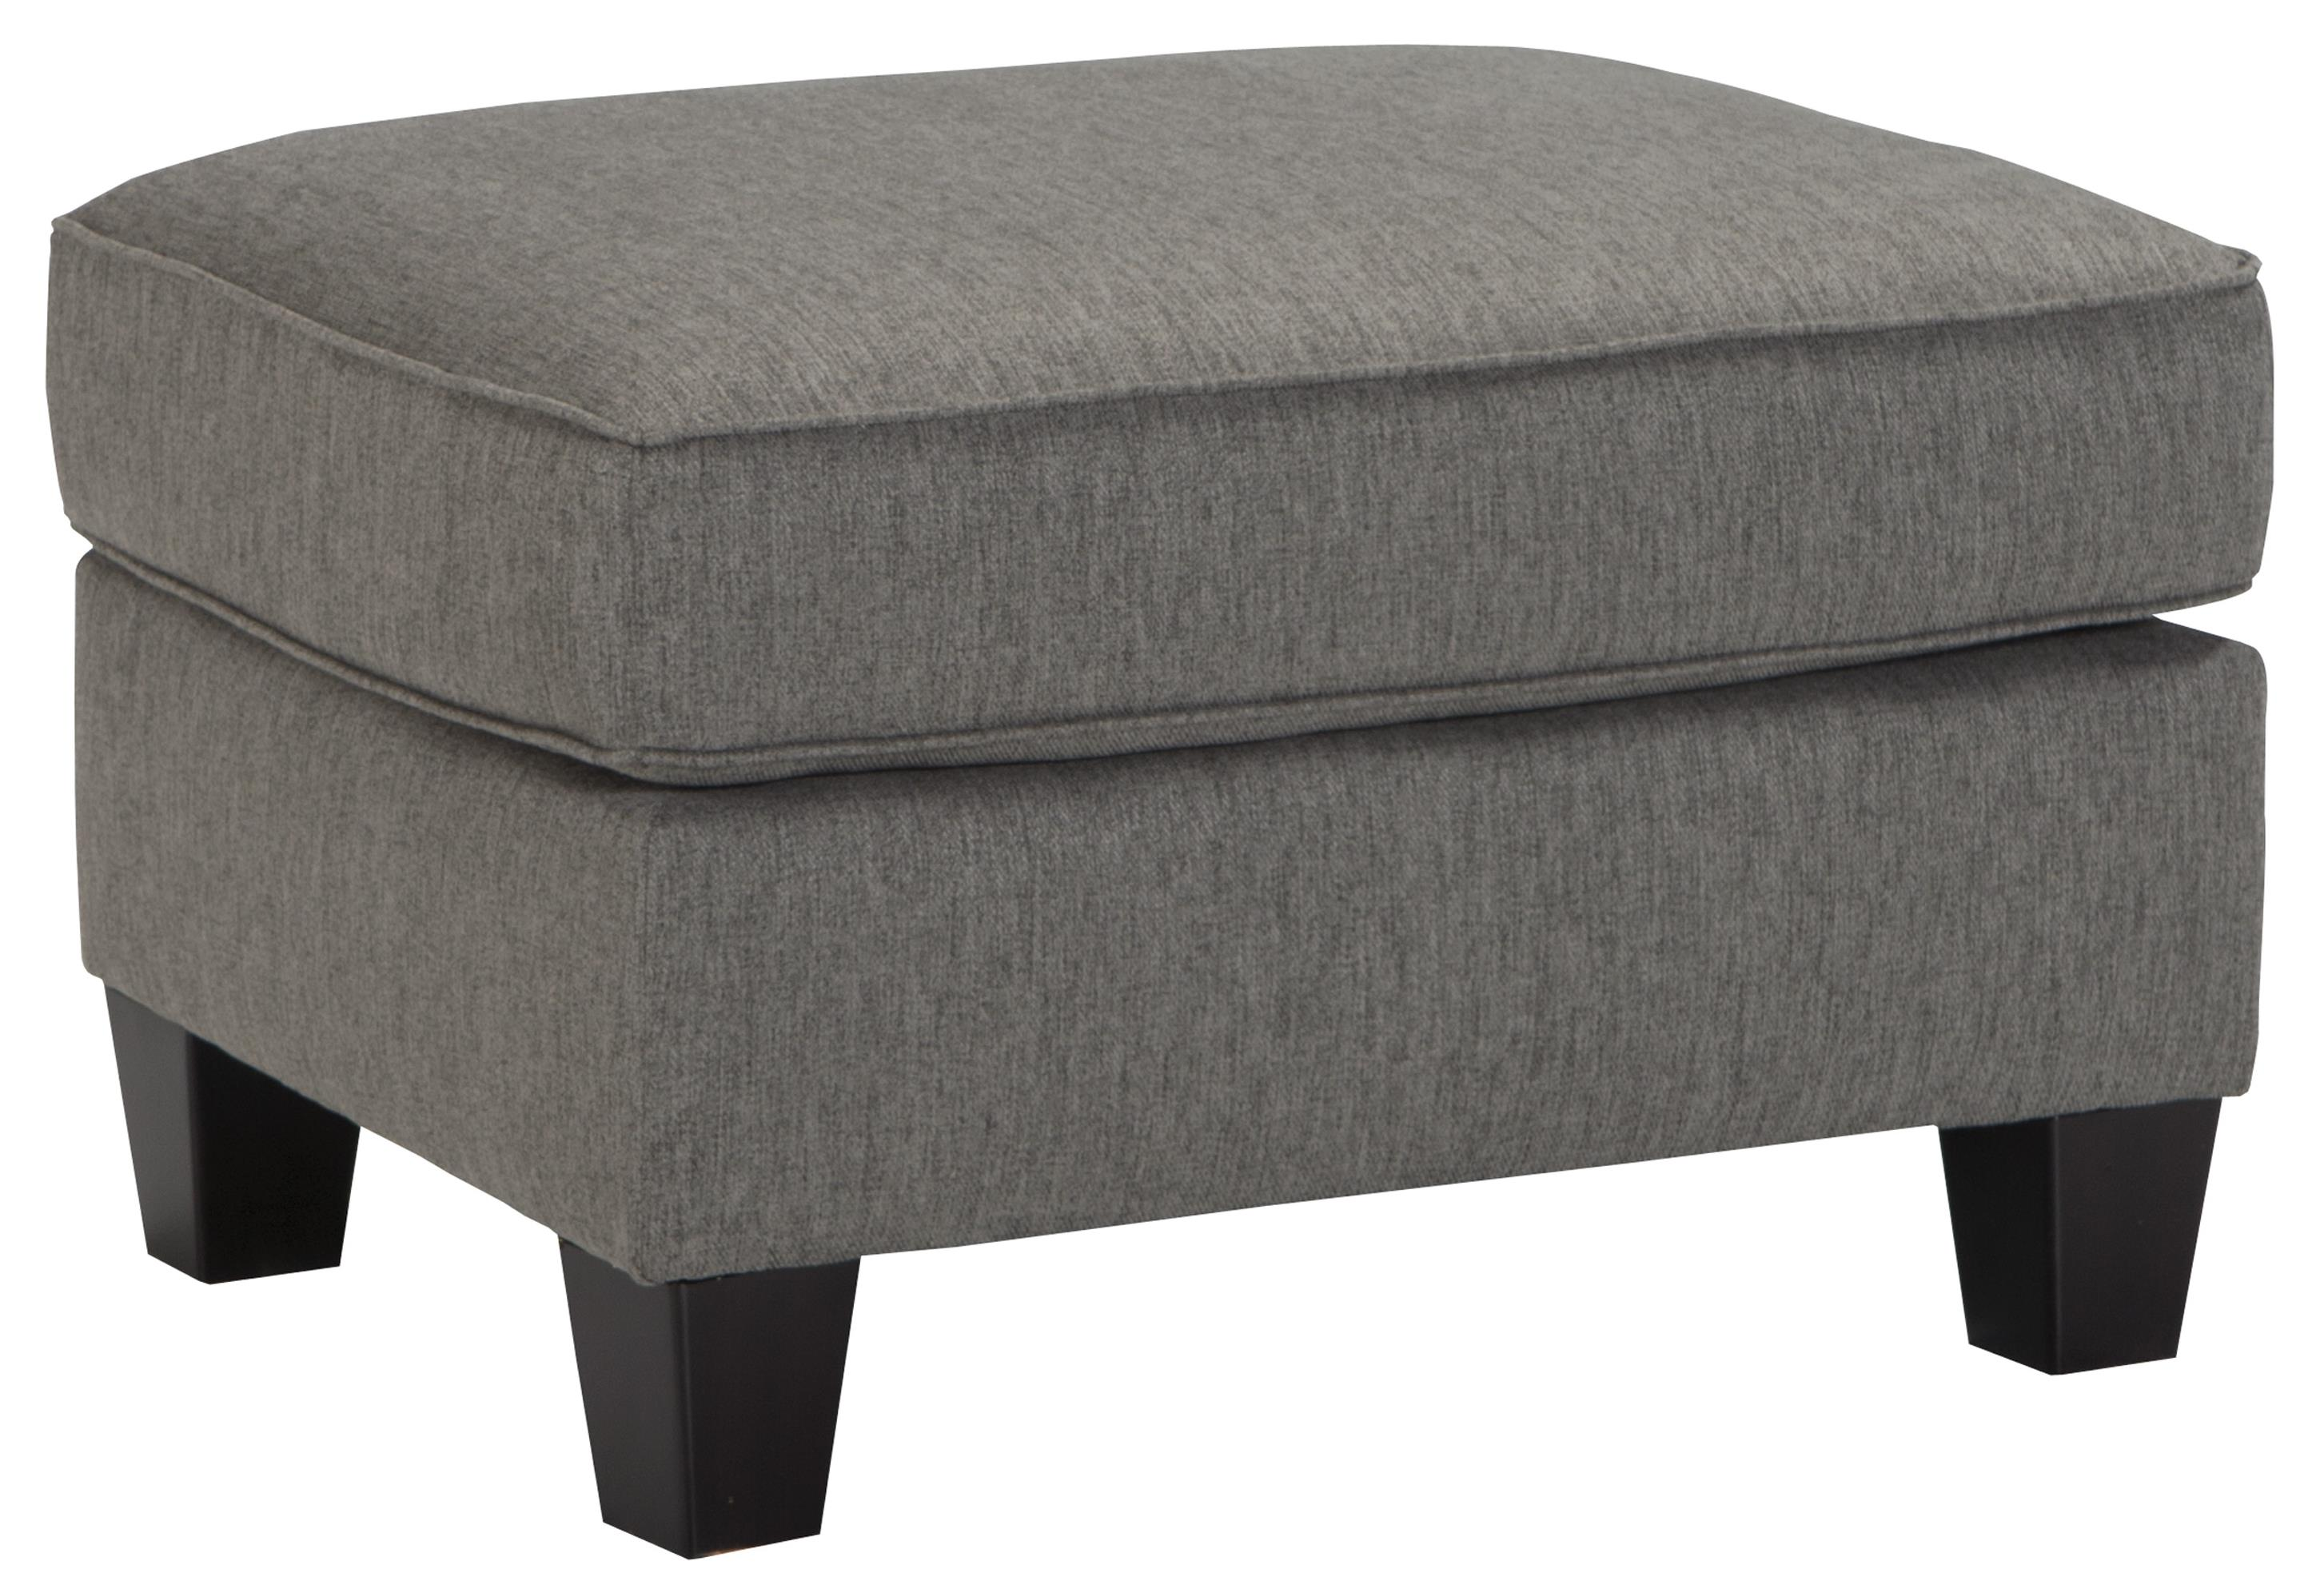 Benchcraft Brindon Ottoman - Item Number: 5390114